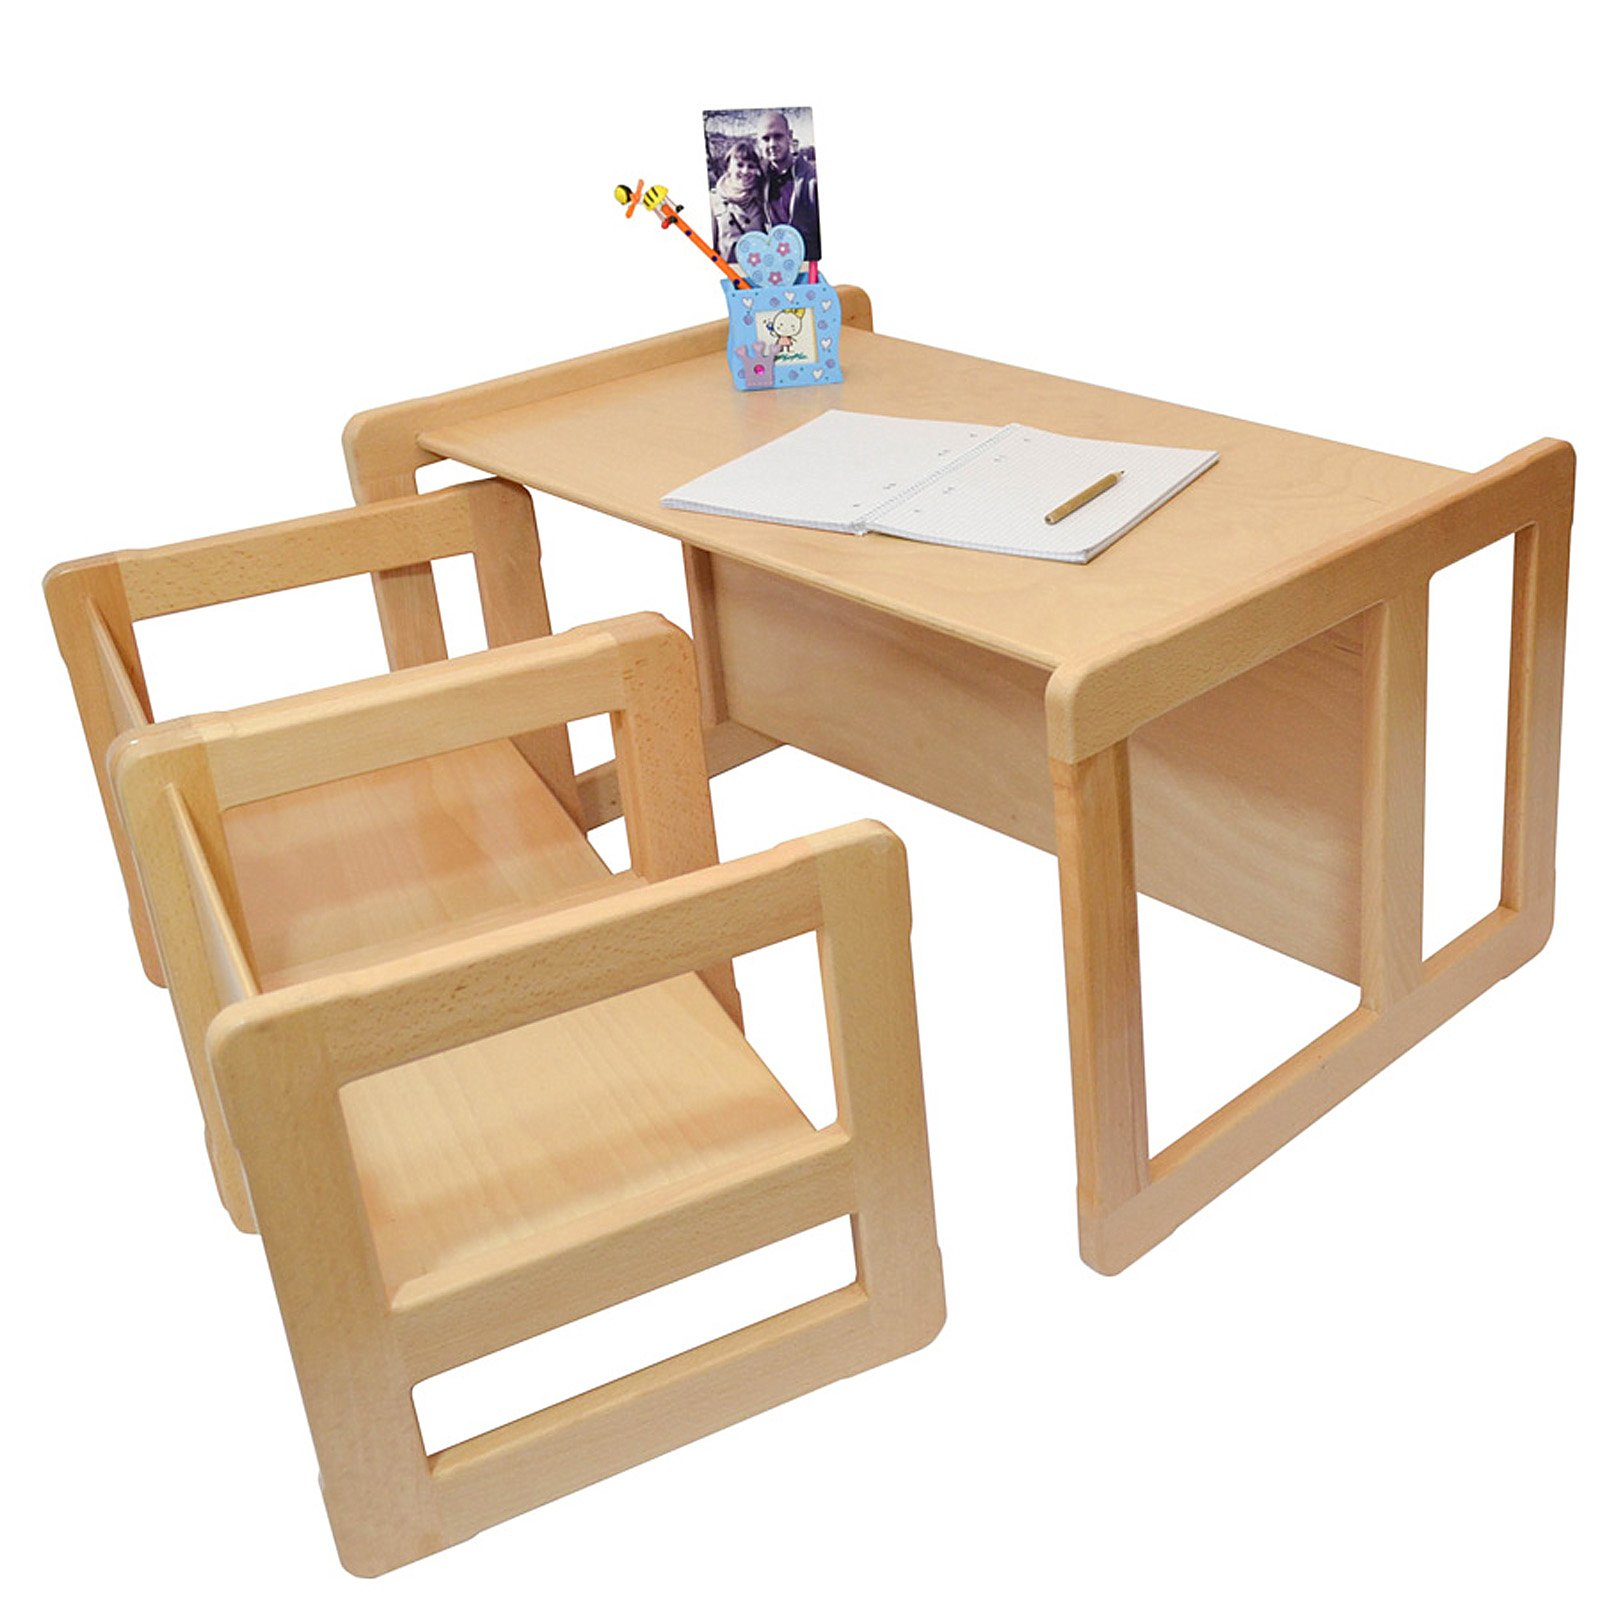 3 in 1 Childrens Multifunctional Furniture Set of 3, Two Small Chairs or Tables and One Large Bench or Table Beech Wood, Natural by Obique Ltd